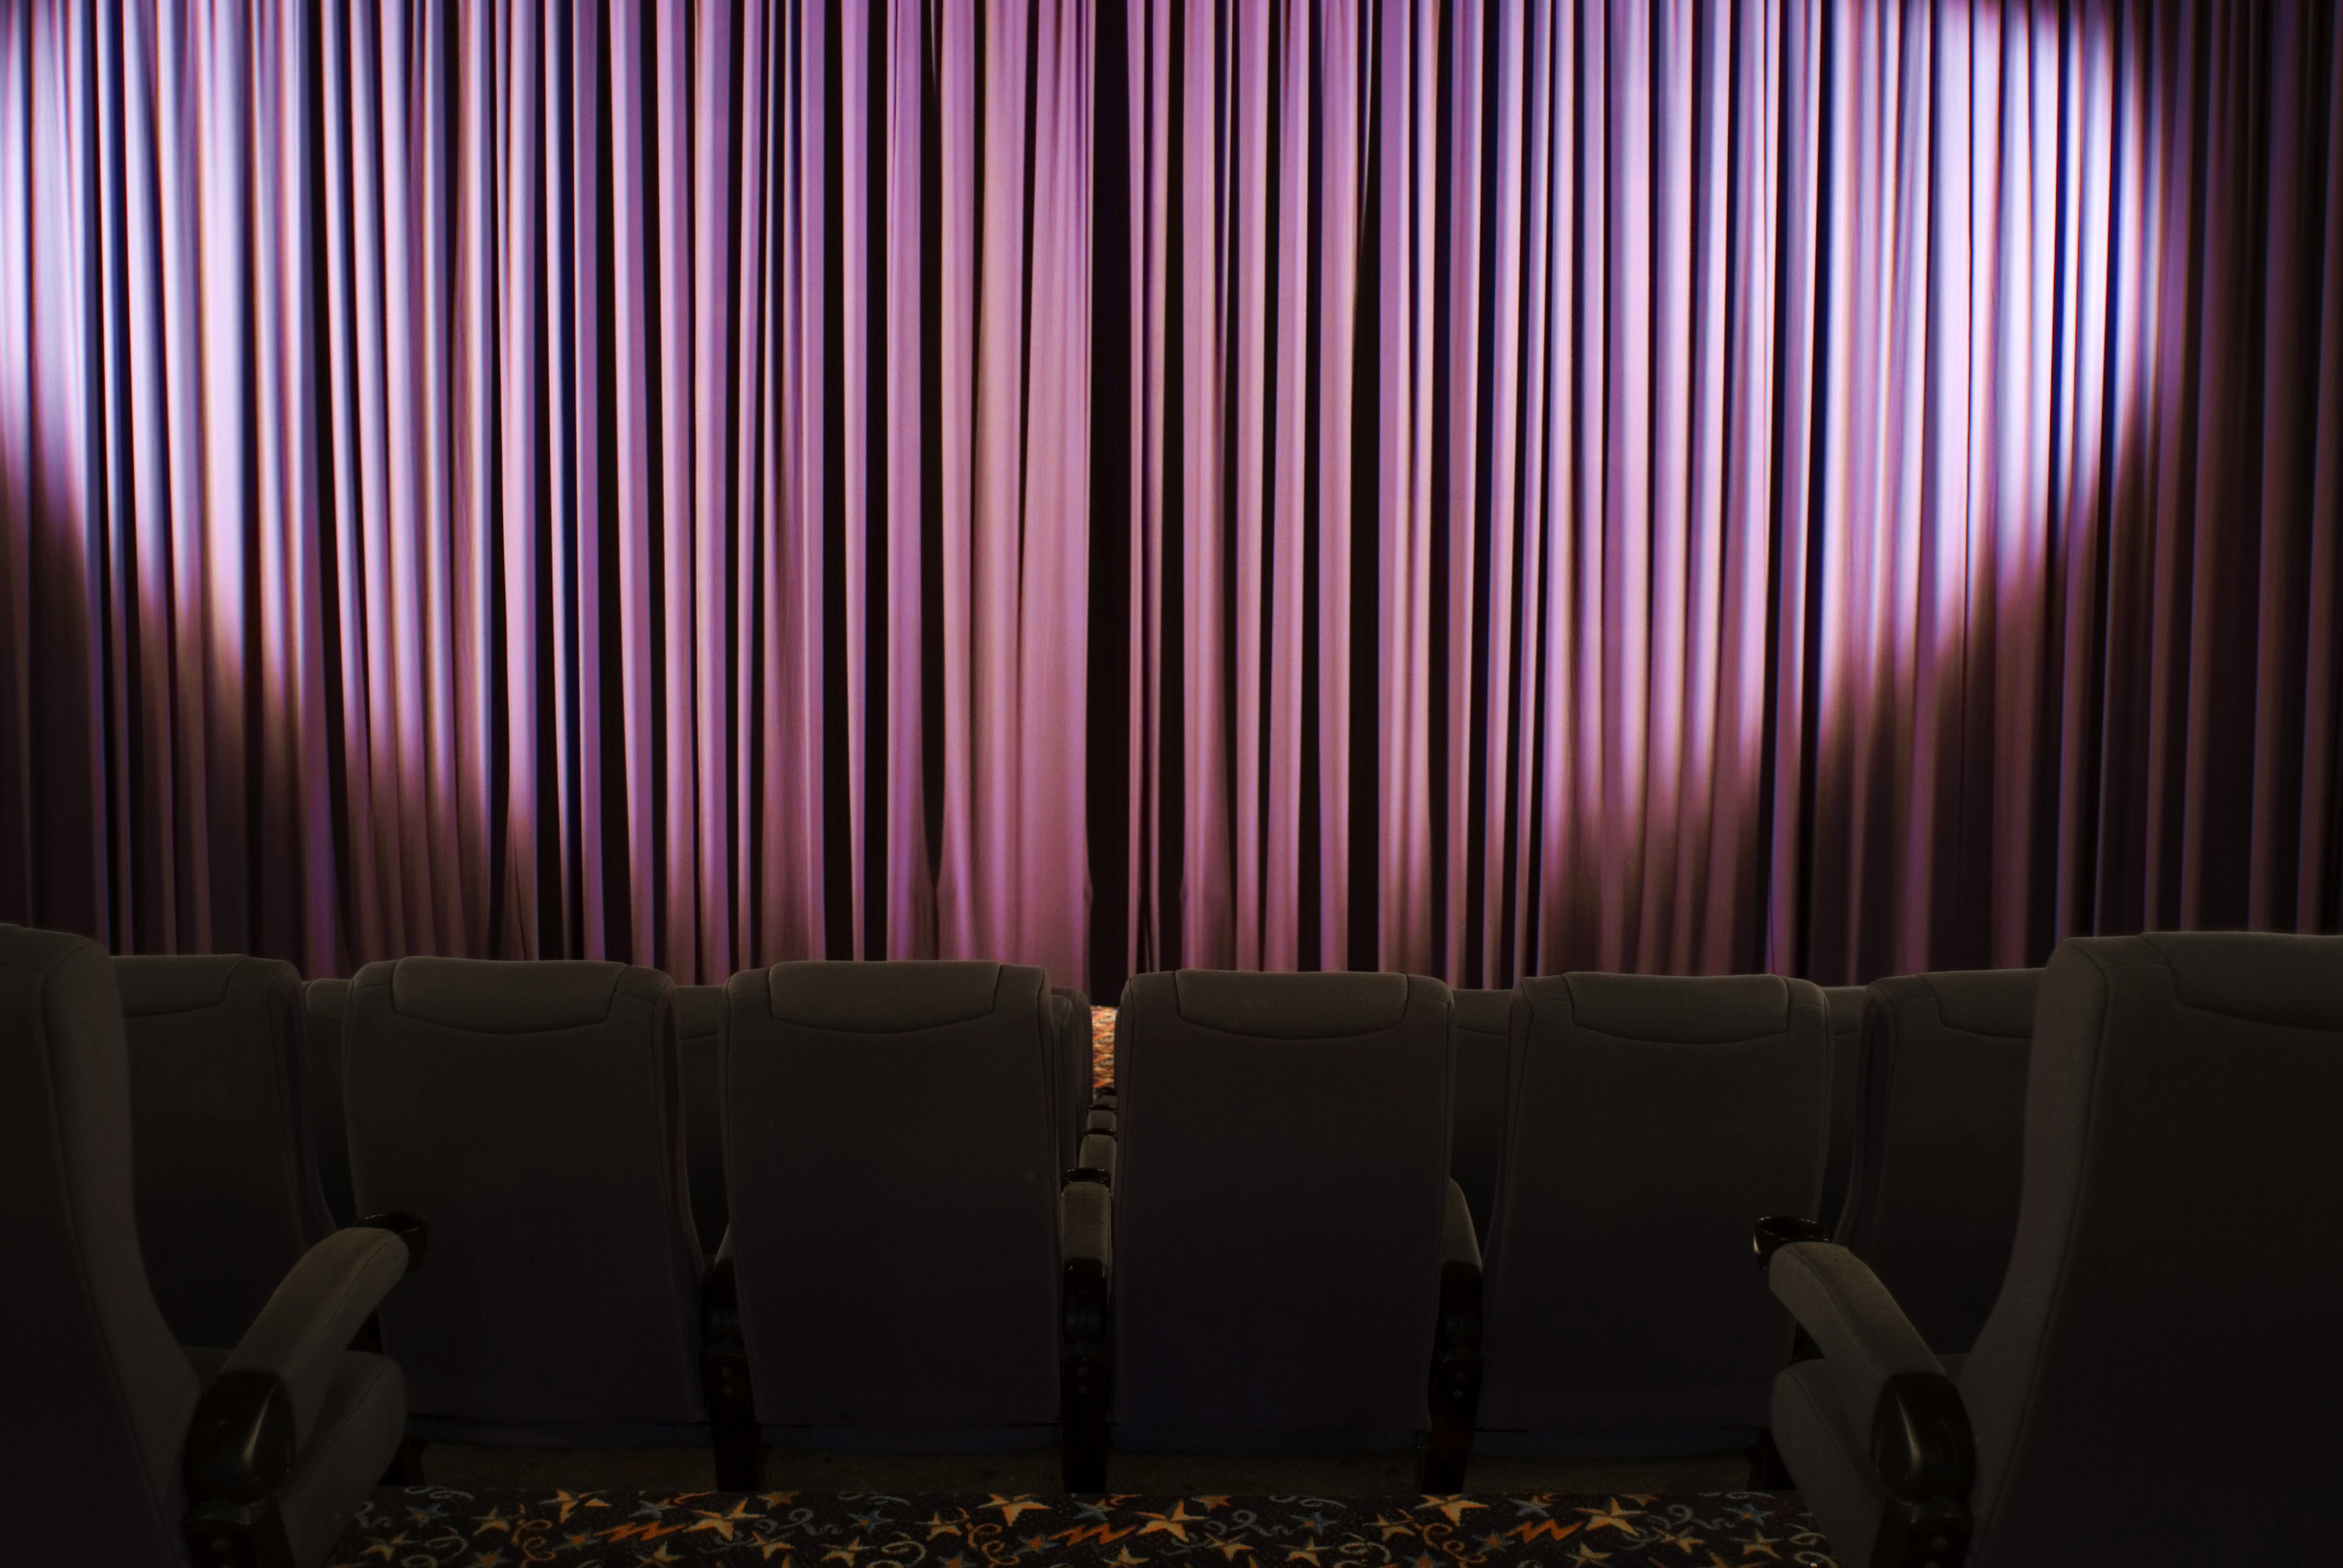 Closed theater curtains - Accept License And Download Image